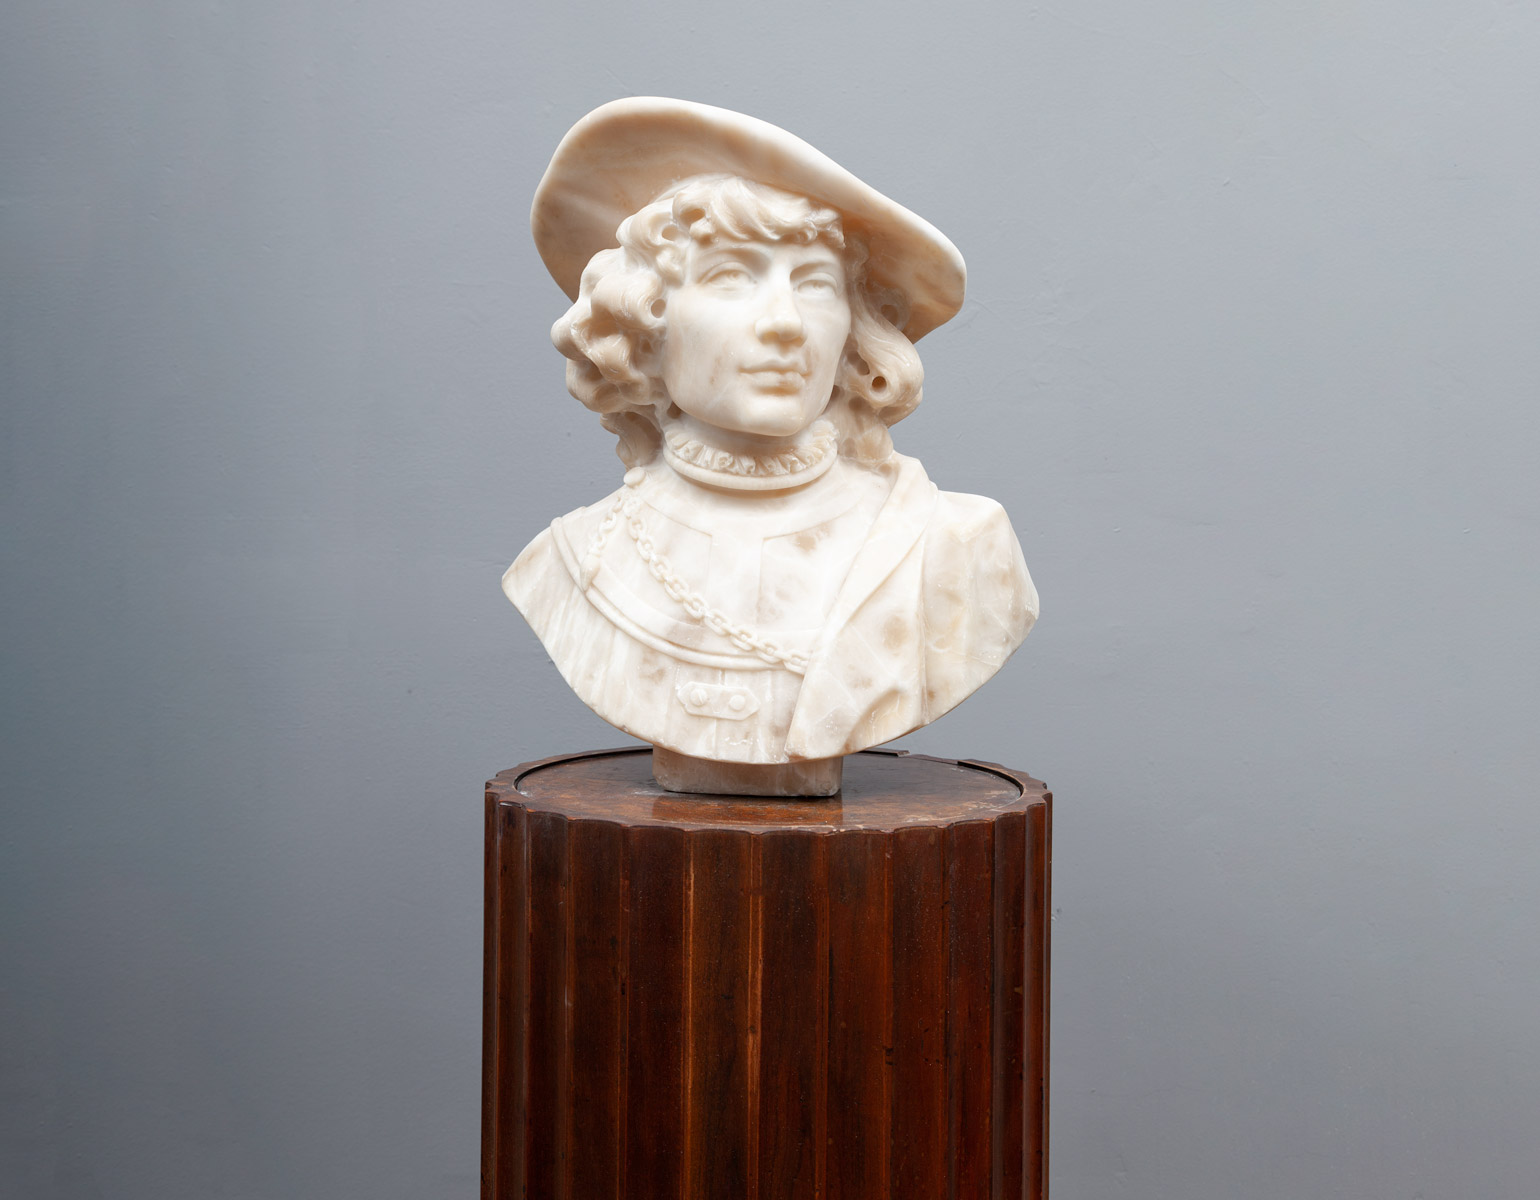 Bust of Rembrandt – SC039